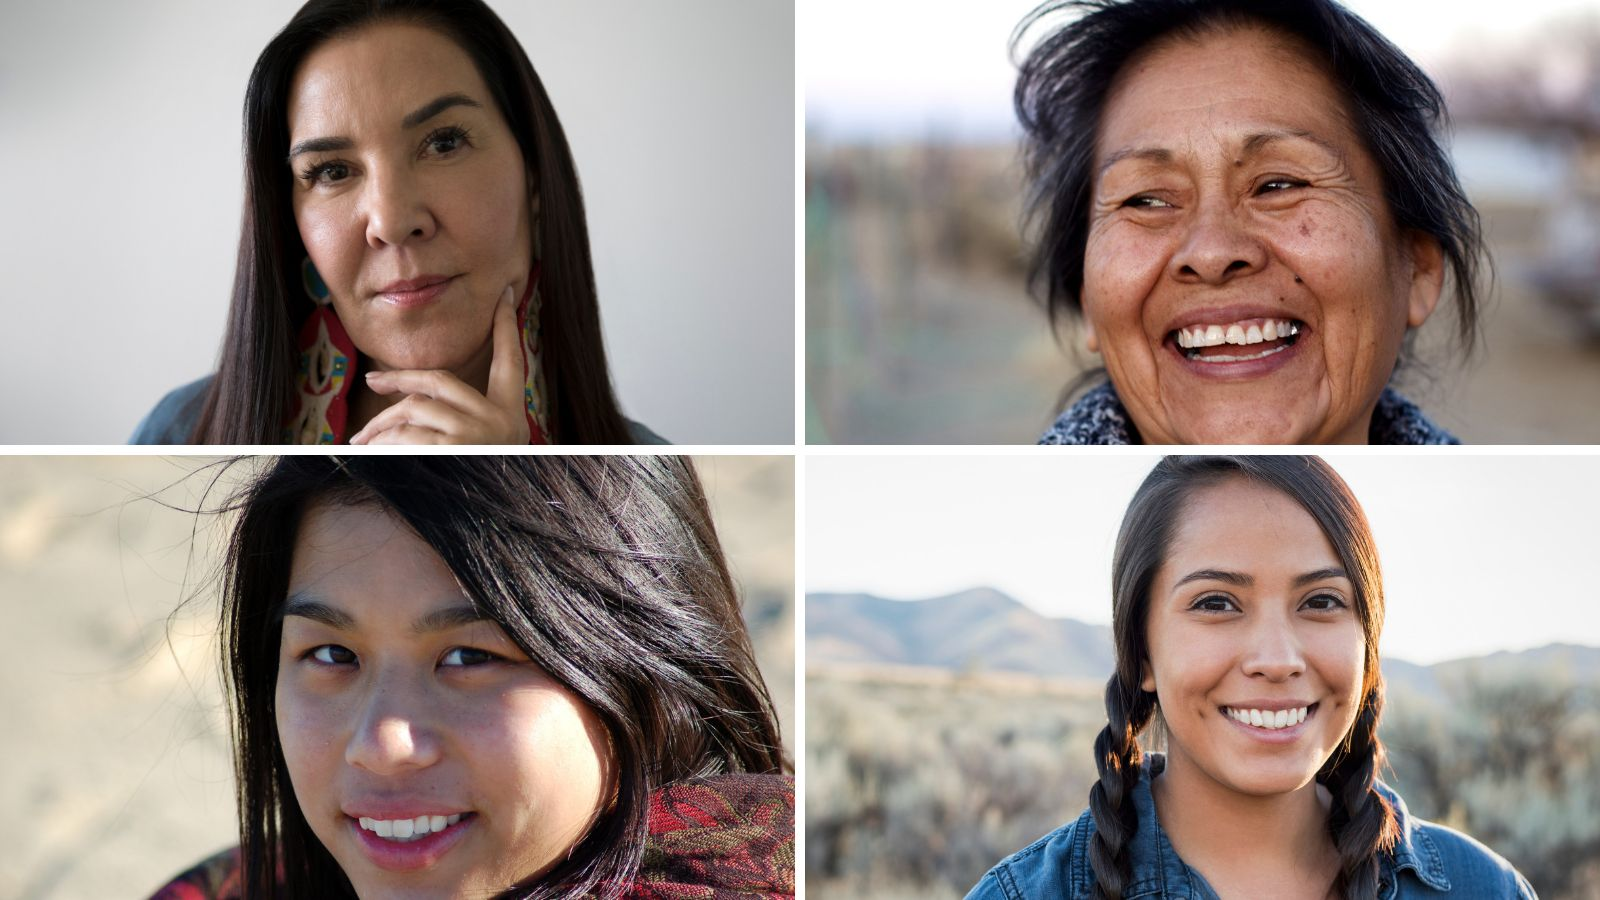 Native women on average must work an additional nine months to make what white men earn in a year.